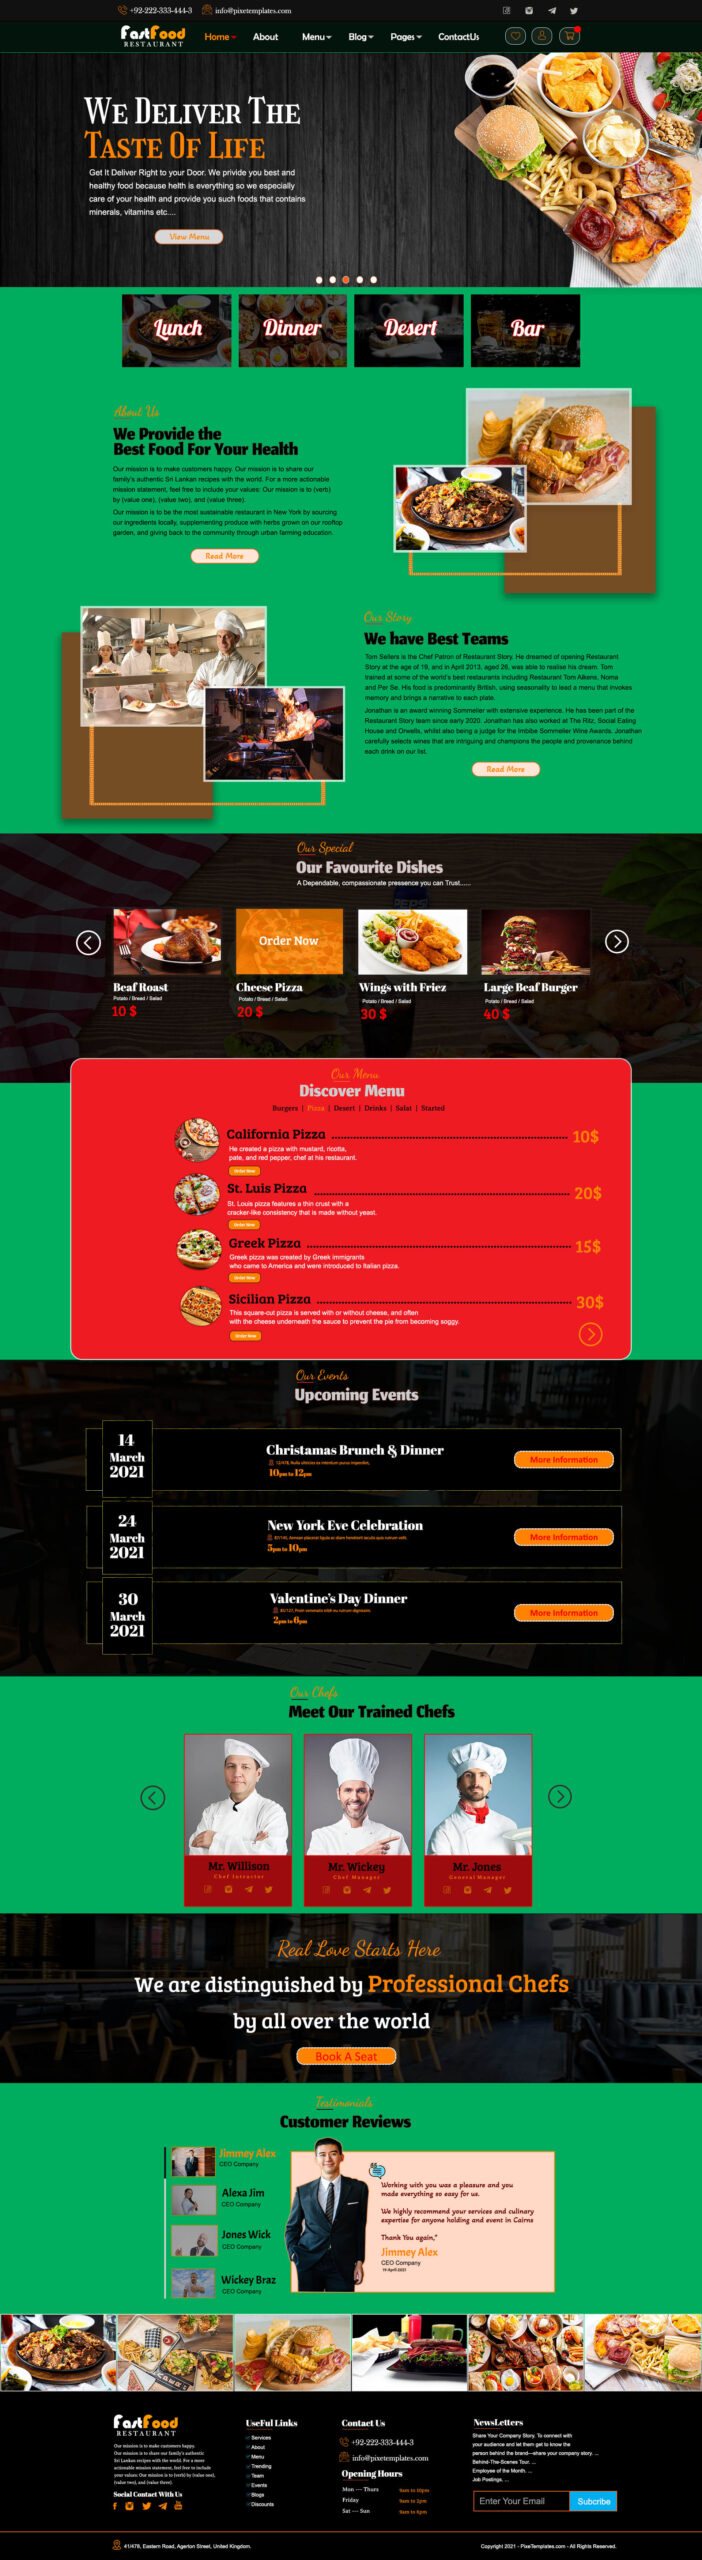 Fast Food Restaurant Website Template for Free